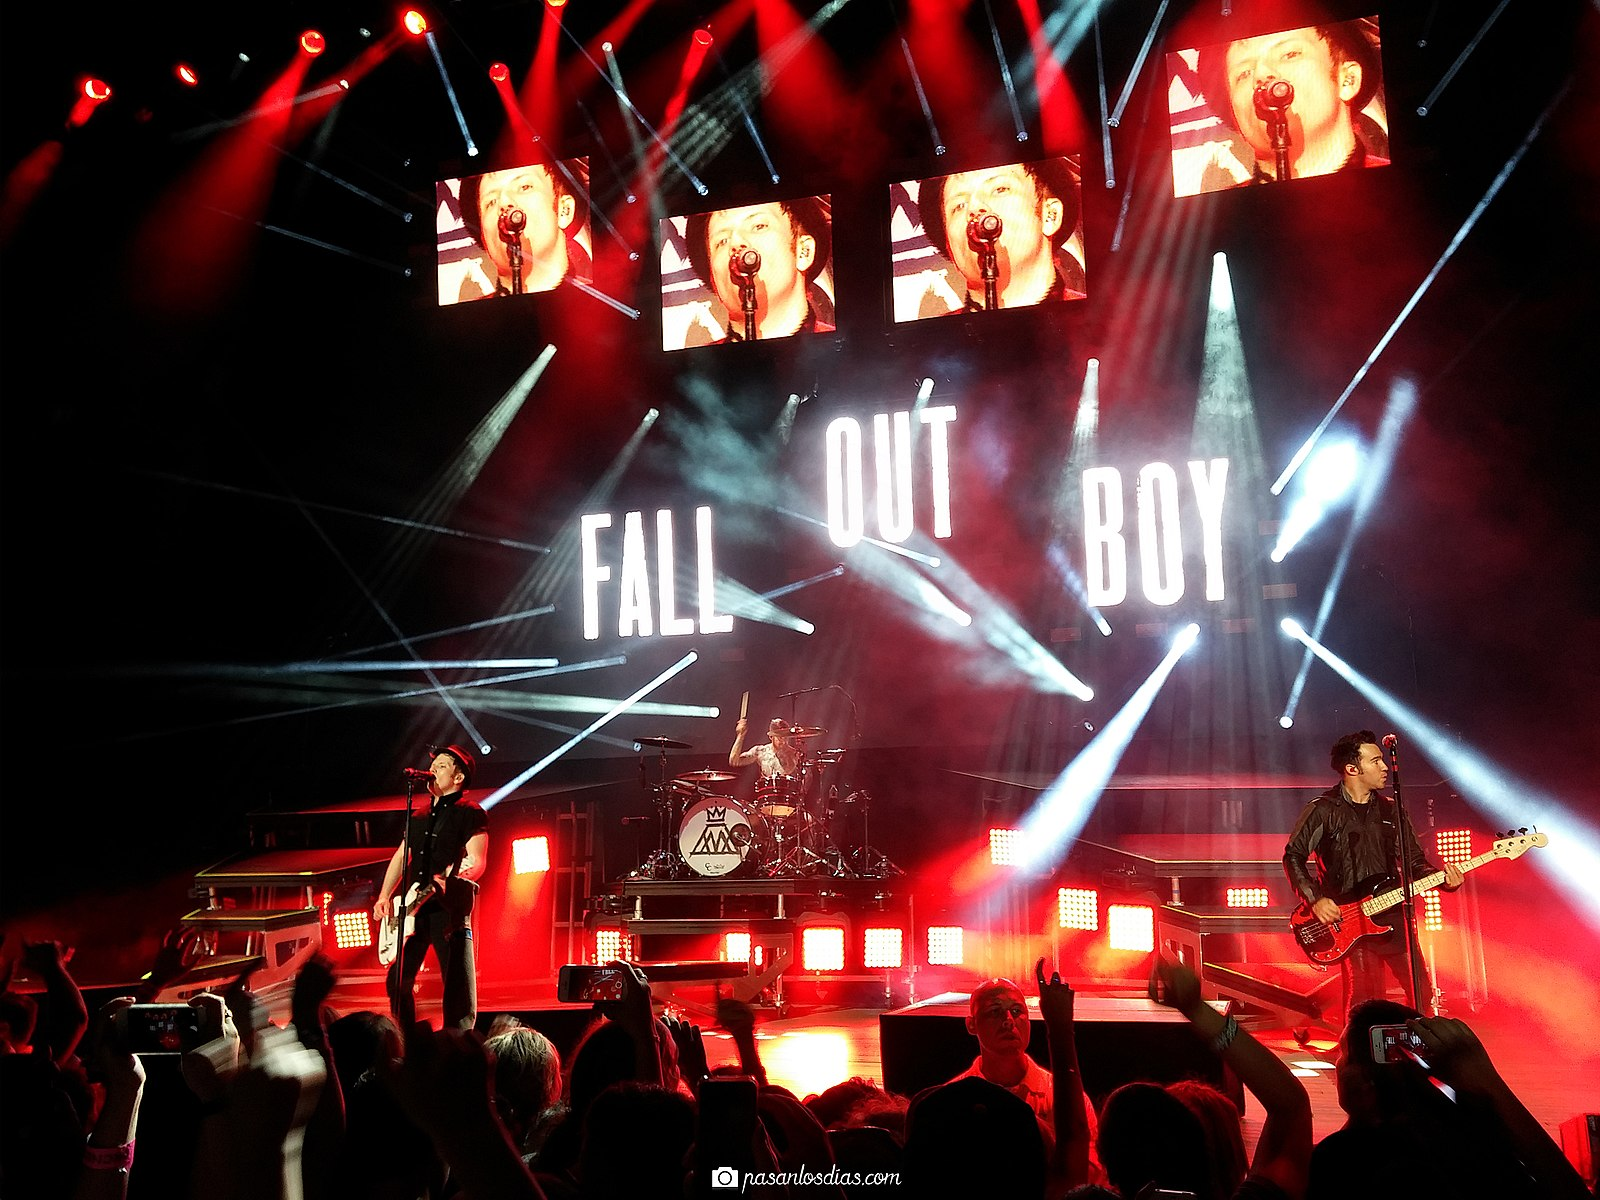 Fall Out Boy Wallpaper Laptop What The Happened To Fall Out Boy A Retrospective